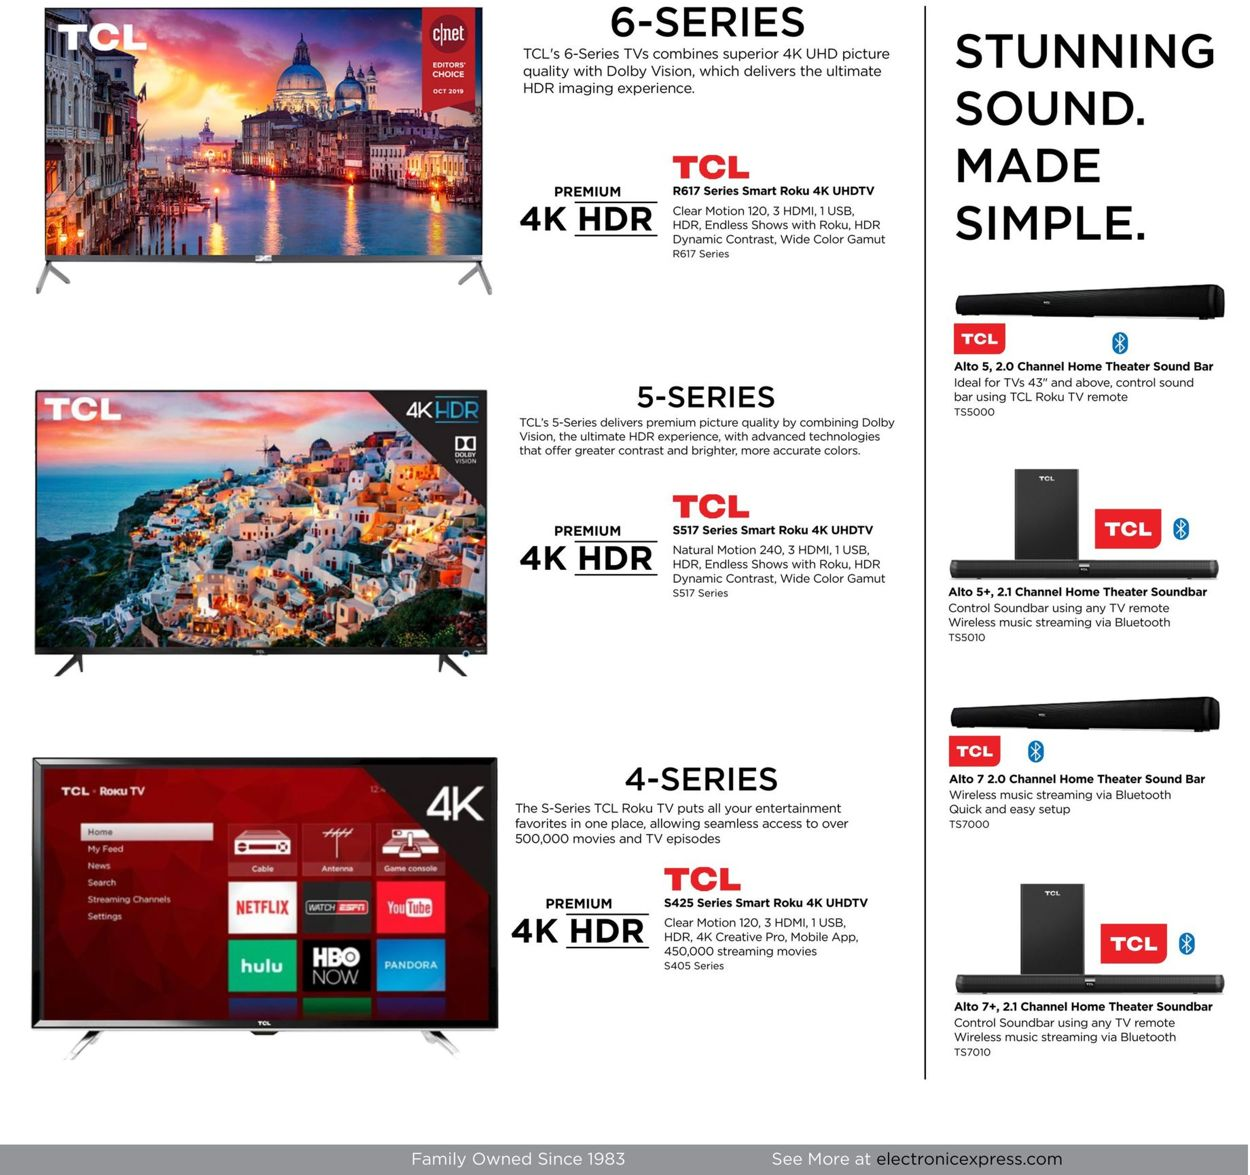 Electronic Express Current weekly ad 11\/03 - 11\/09\/2019 [2] - frequent-ads.com